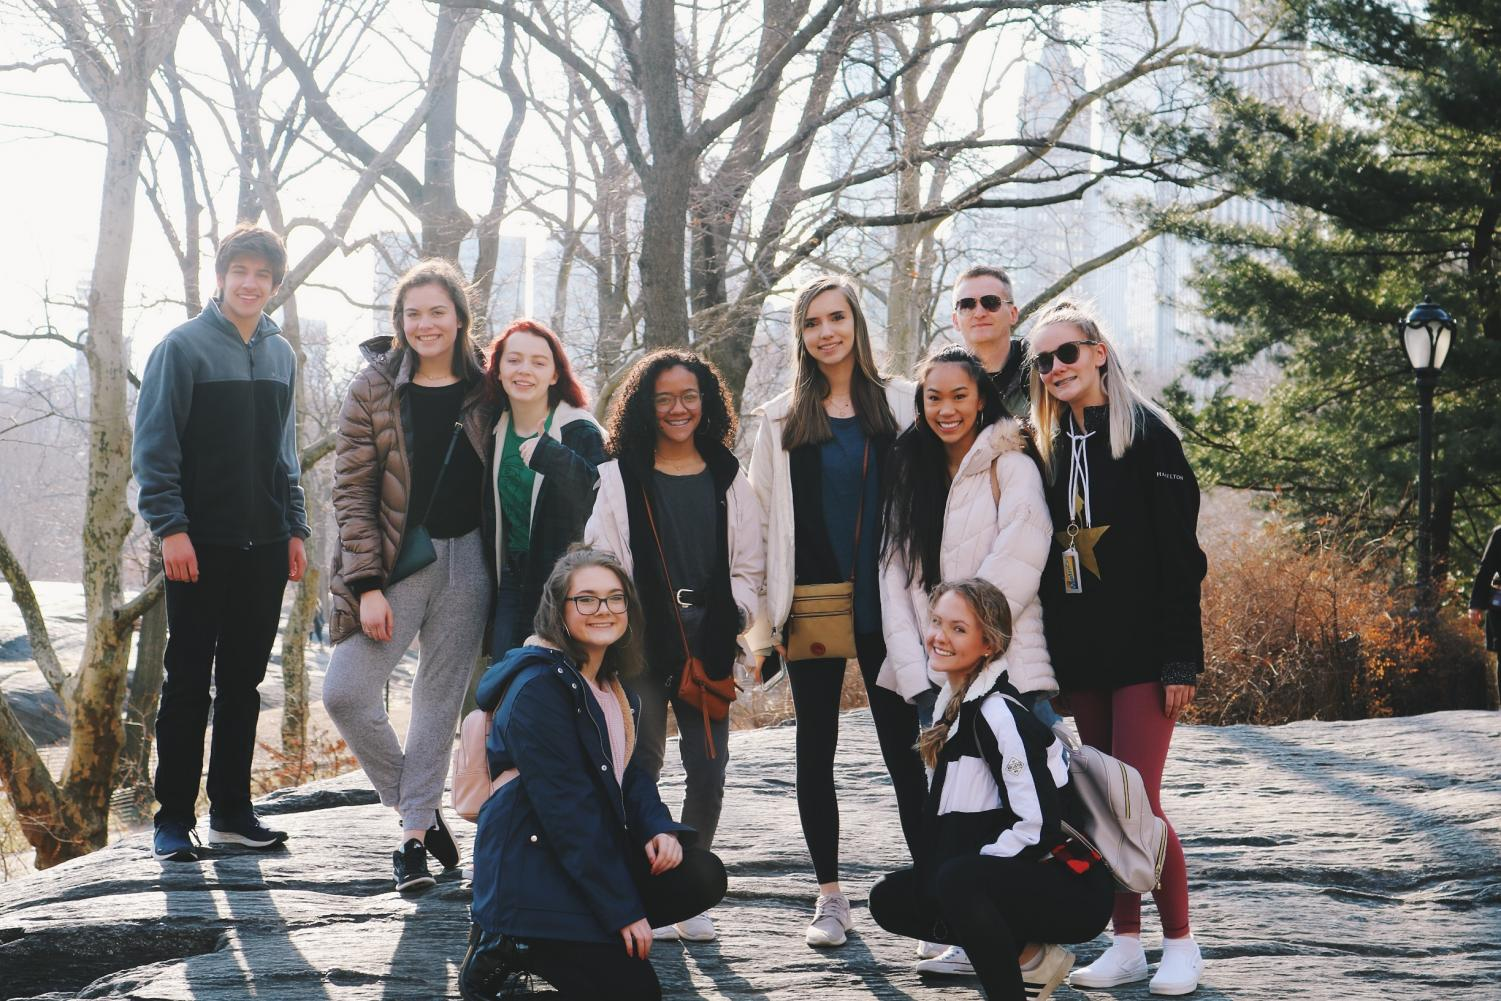 Posing in Central Park in New York City, these students along with Mr. Kotzian smile for the camera. Last week, multiple students went to New York City to learn about more about professional theatre and dance.